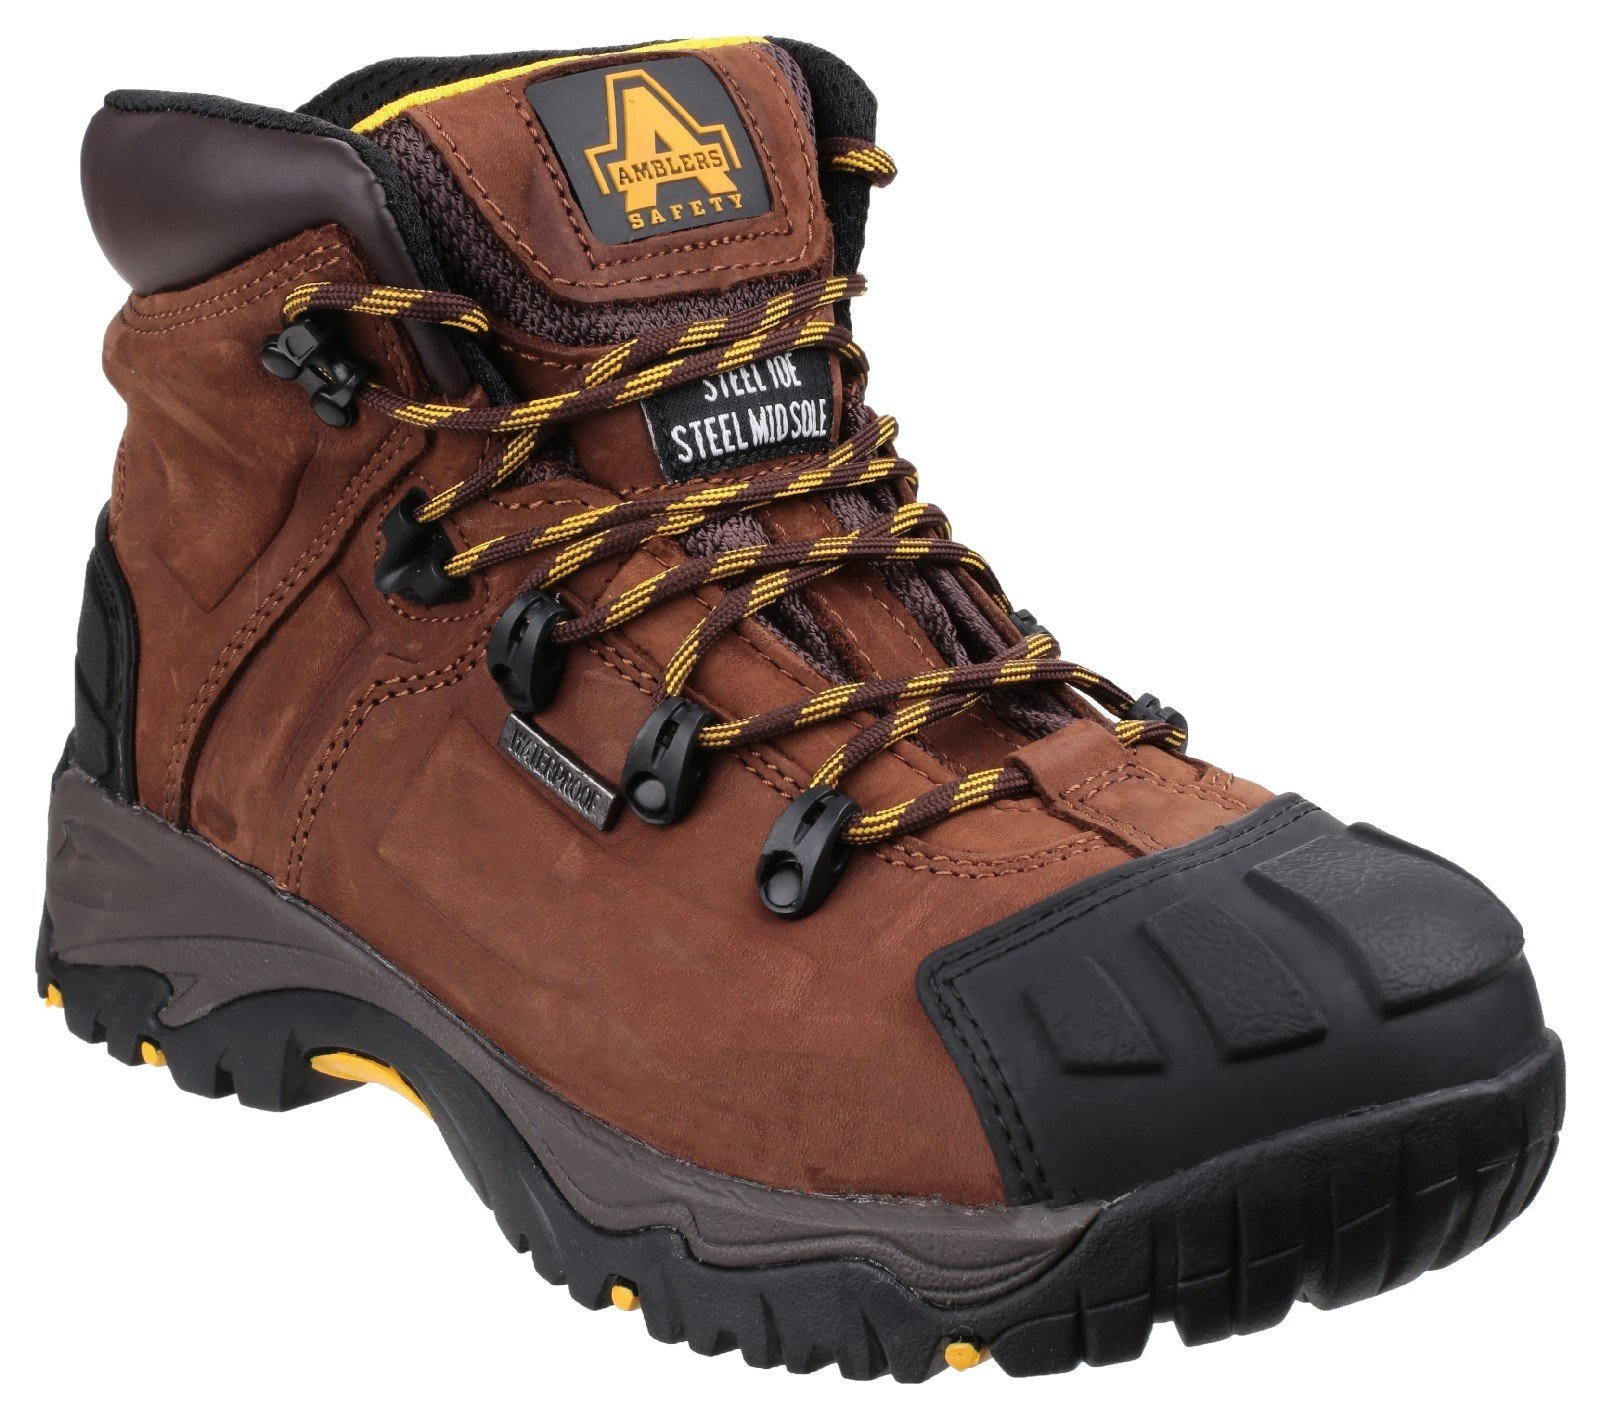 Amblers Unisex Safety Waterproof Lace up Boot Brown 19641 - Brown 6